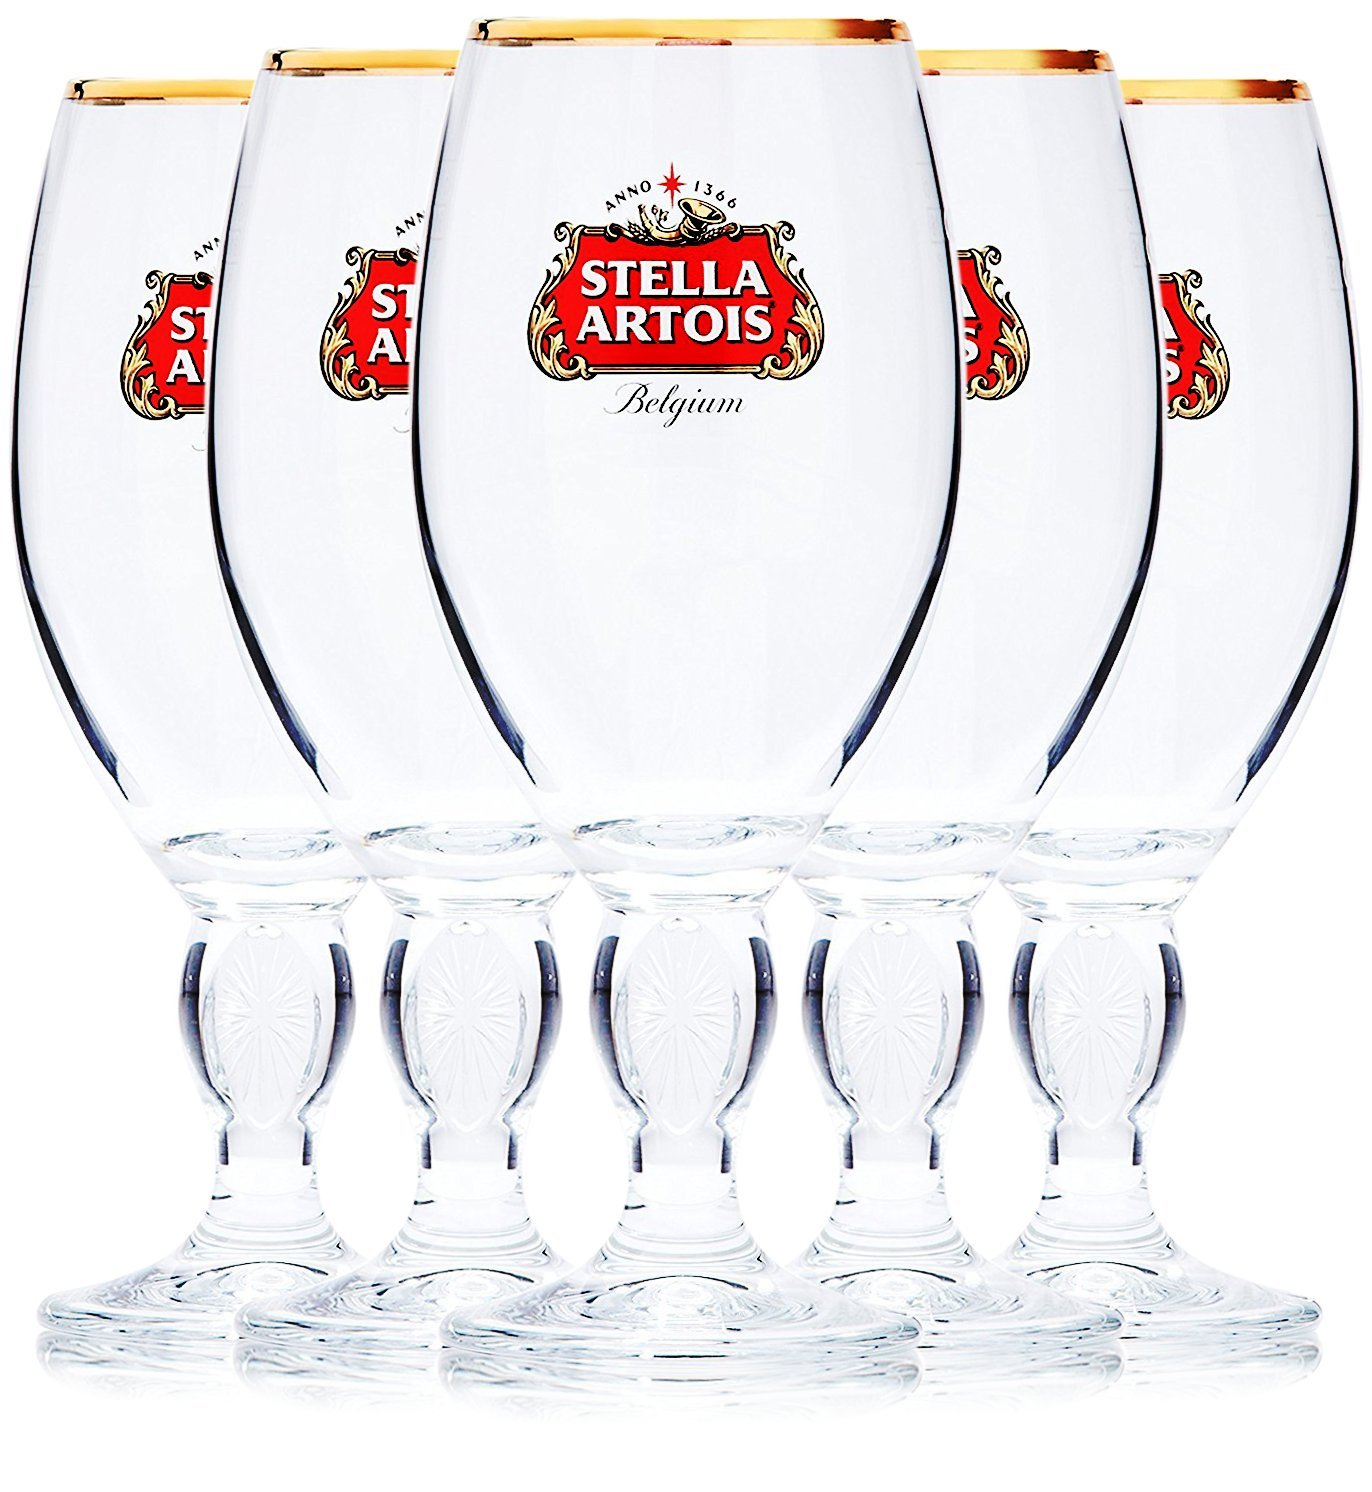 Stella Artois 5-Pack Original Beer Glass Chalice, 33cl by Stellla (Image #1)